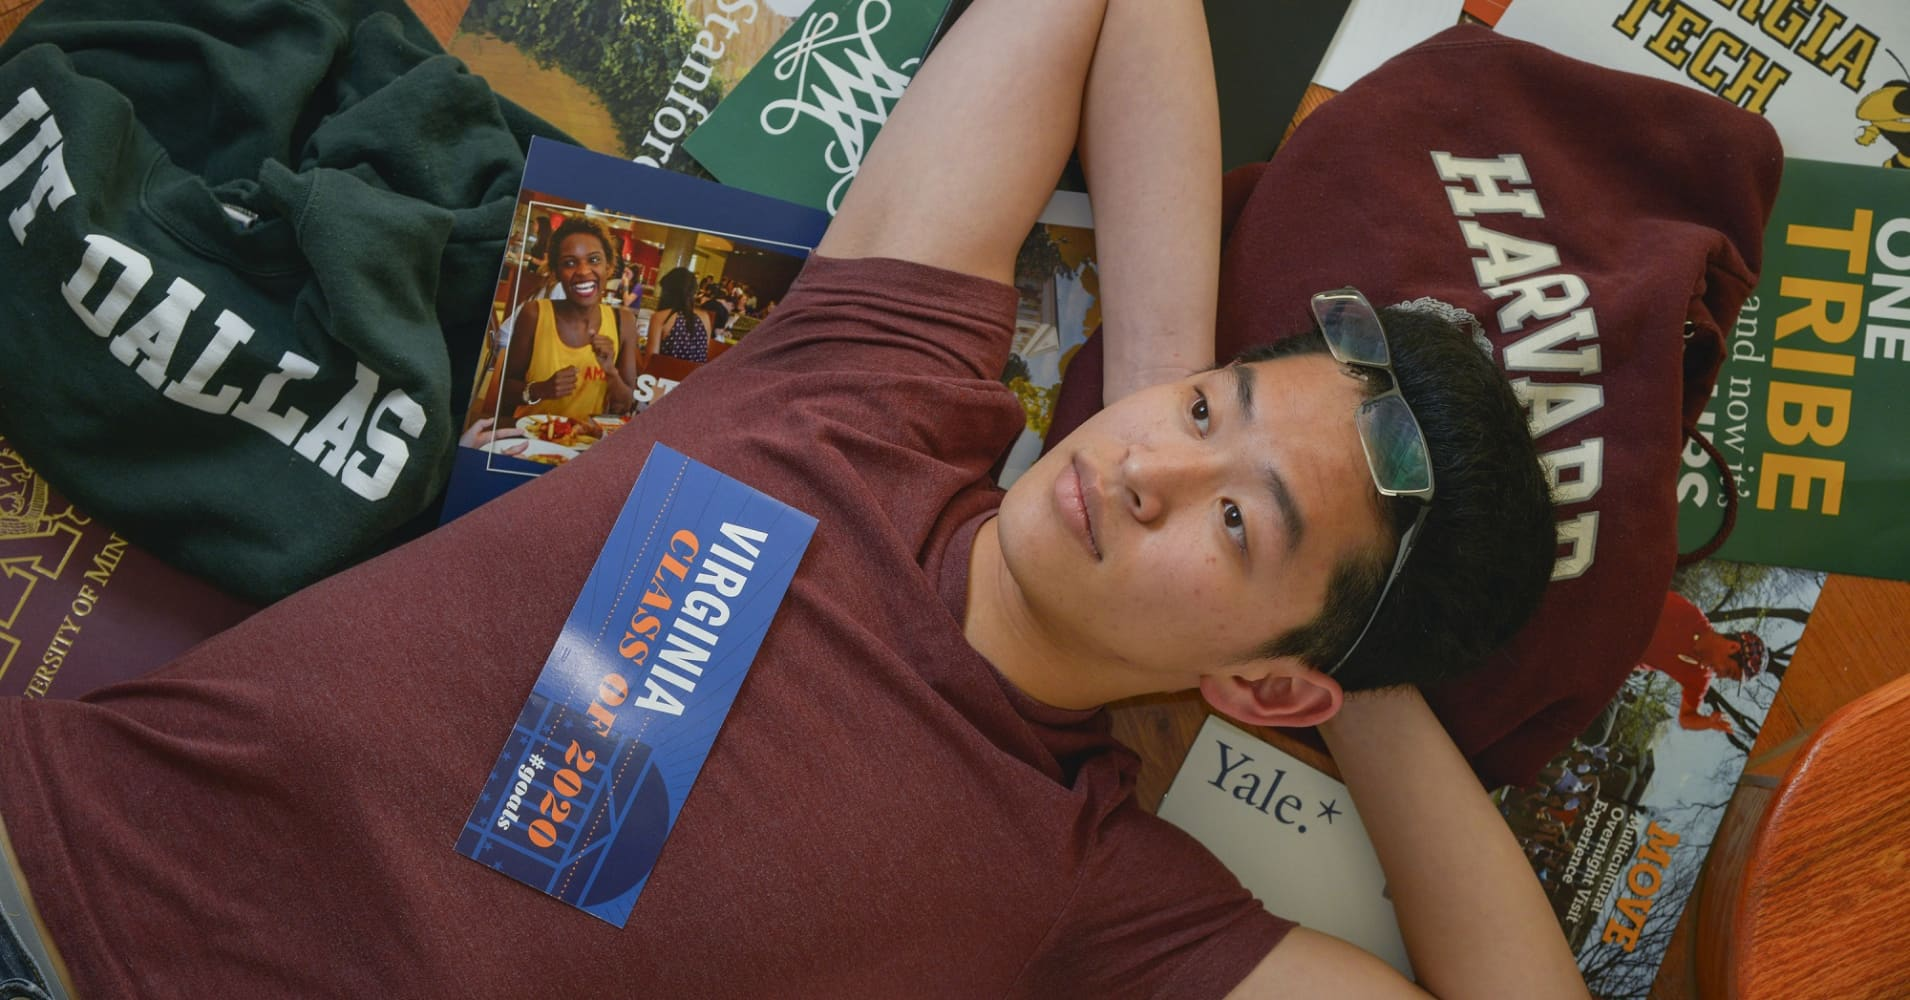 Apollo Yong, a 17-year-old student at Washington-Lee High, pictured at his home on Wednessday, April 13, 2016, in Arlington, VA. Yong is among thousands of students who have places on acceptance wait lists for universities around the country. He as been accepted into U-Va., Georgia Tech and UT Dallas, and he was waitlisted by University of C